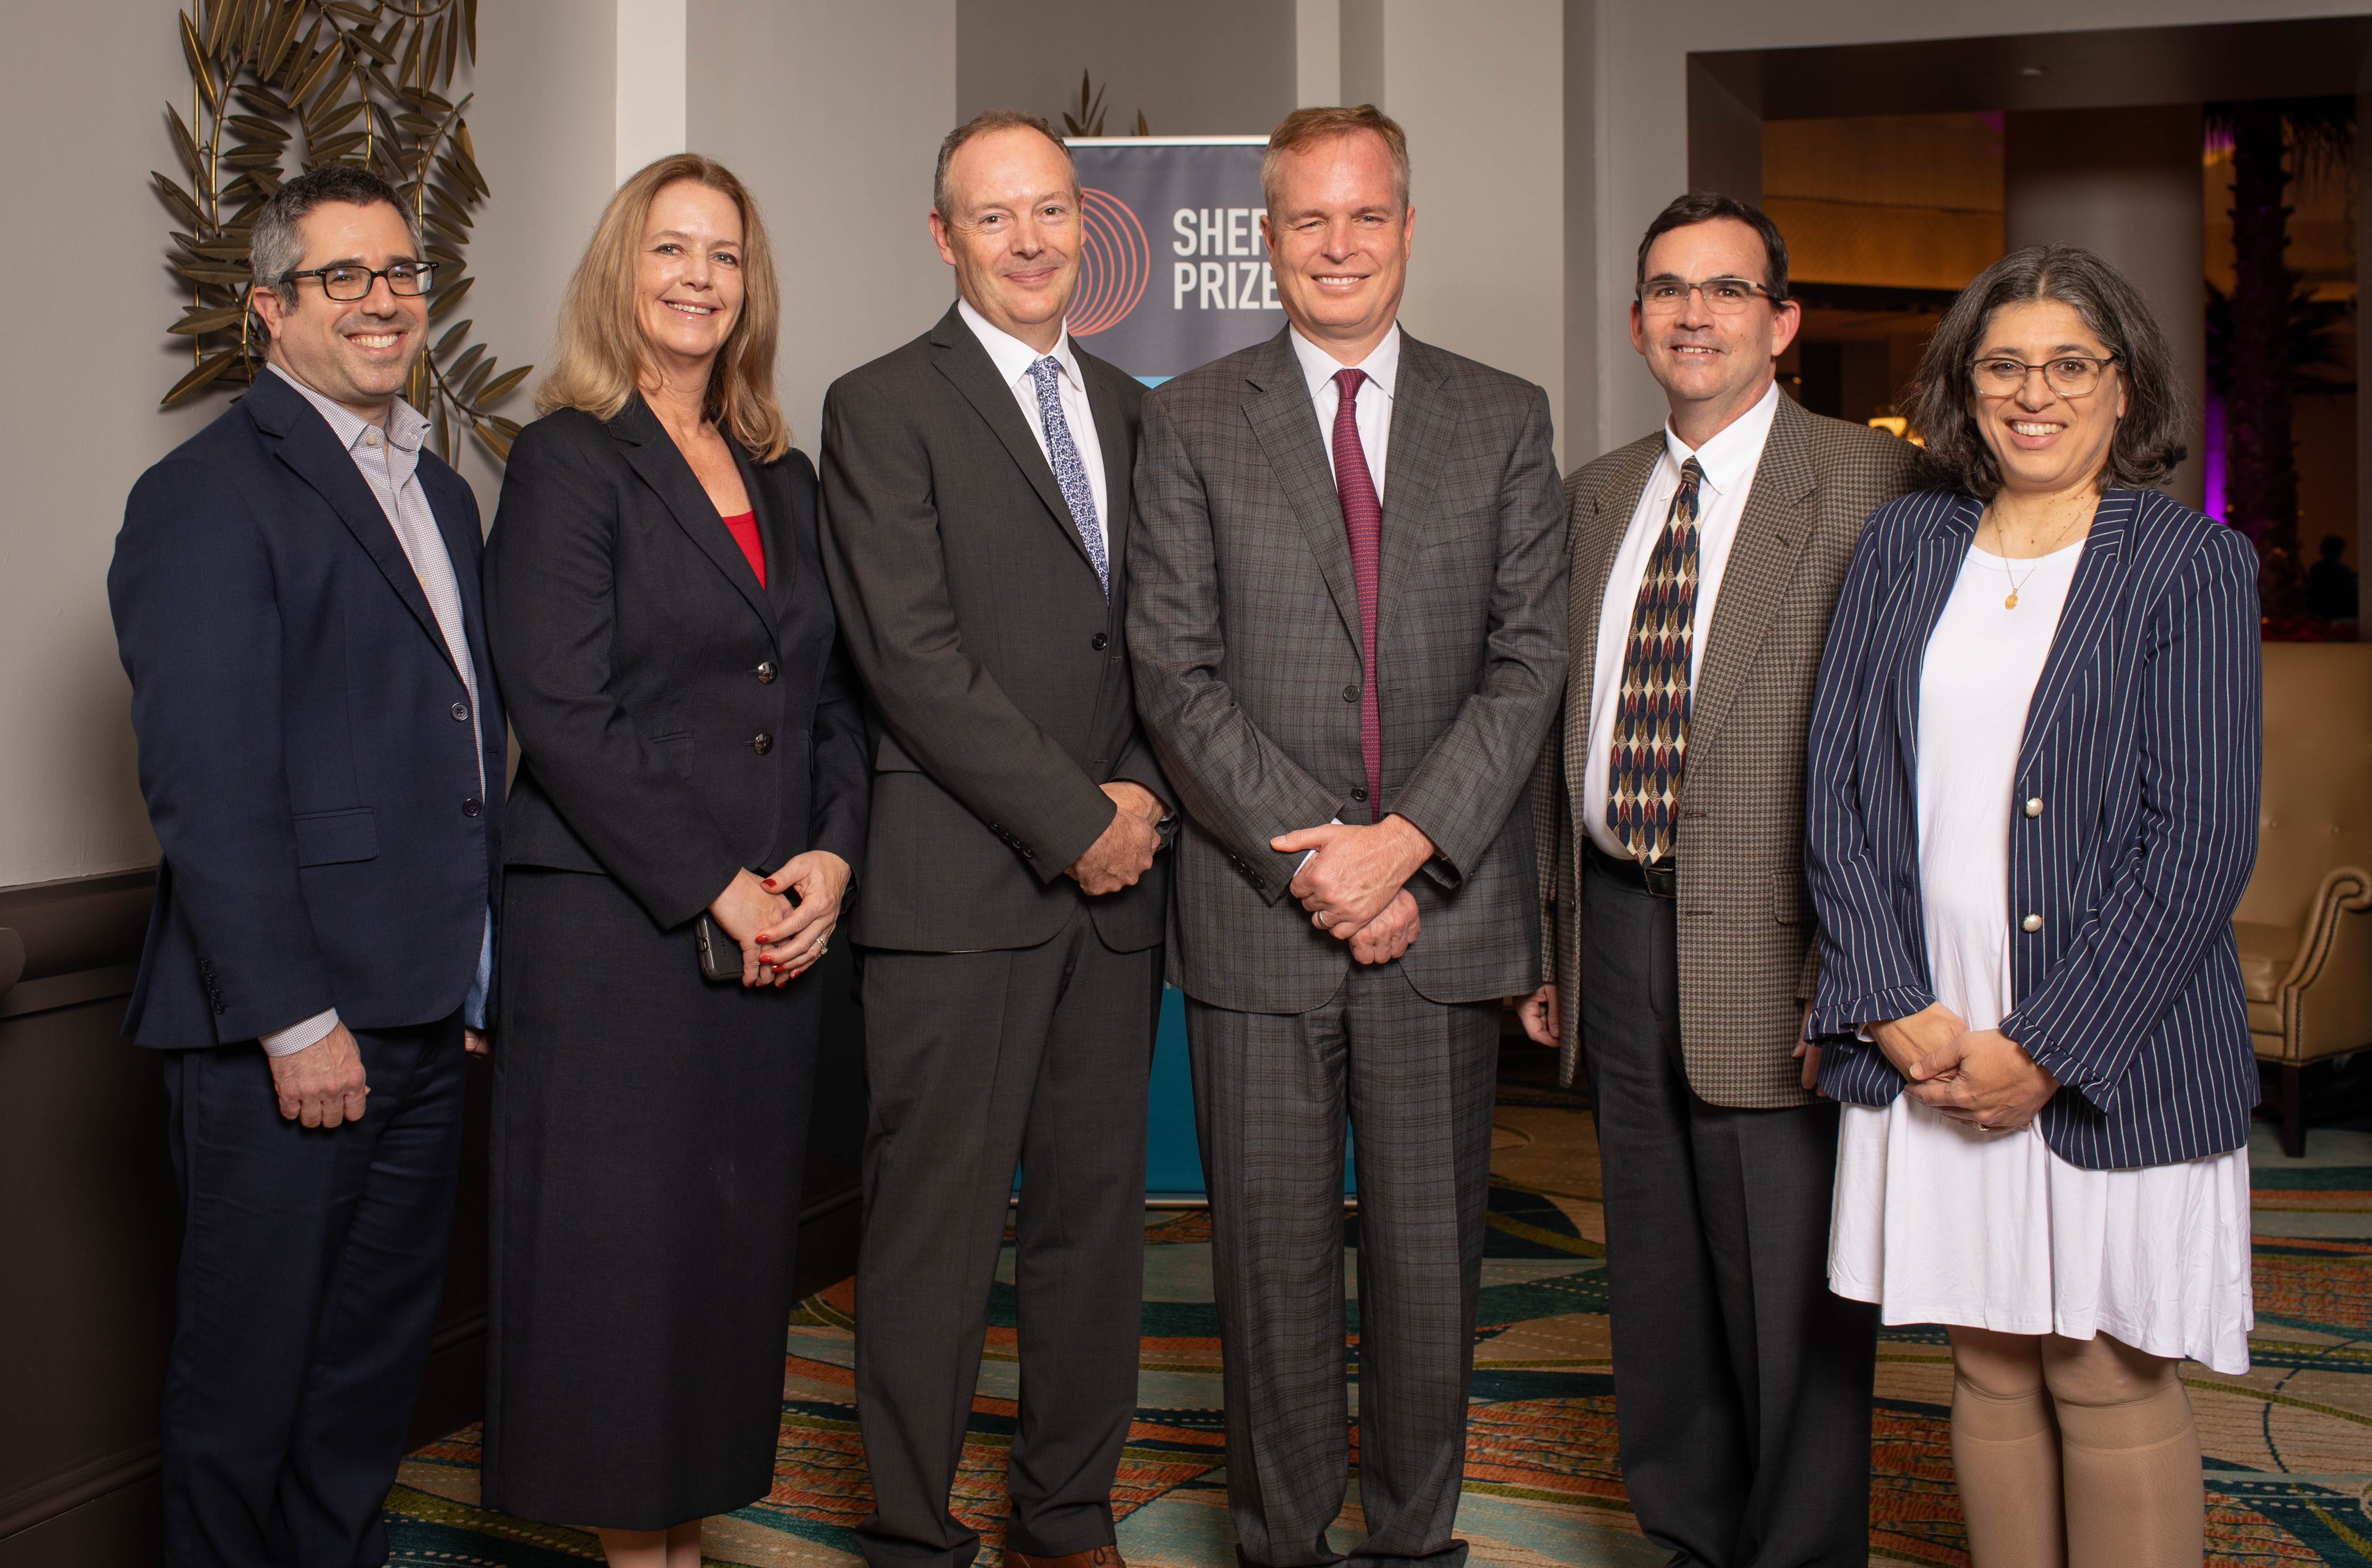 <p>2019 Selection Committee with 2019 Sherman Prize Recipient Dr. William Sandborn</p>